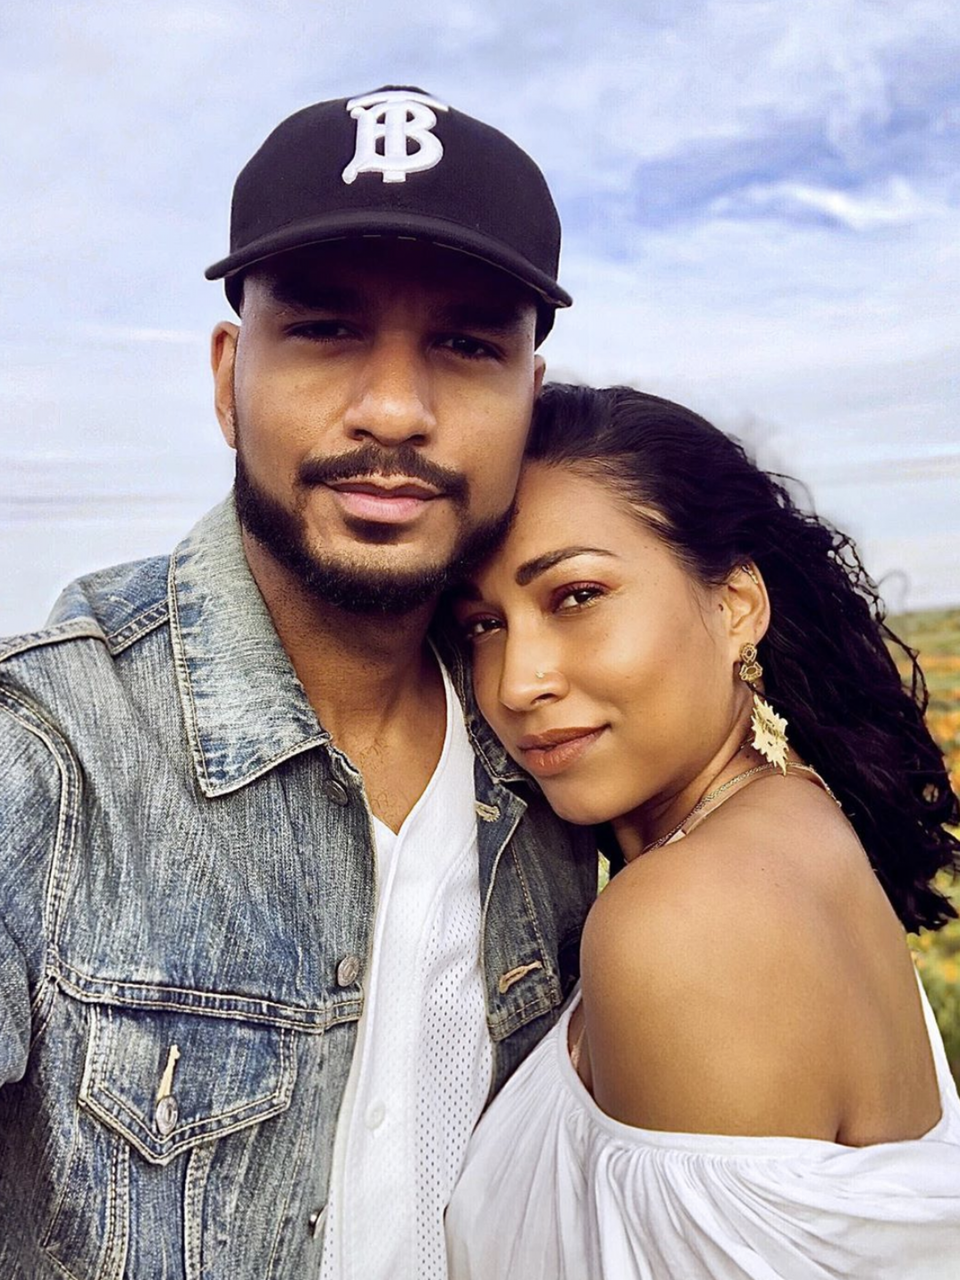 Melanie Fiona and Jared Cotter Eloped in The Sweetest and Most Lowkey Way